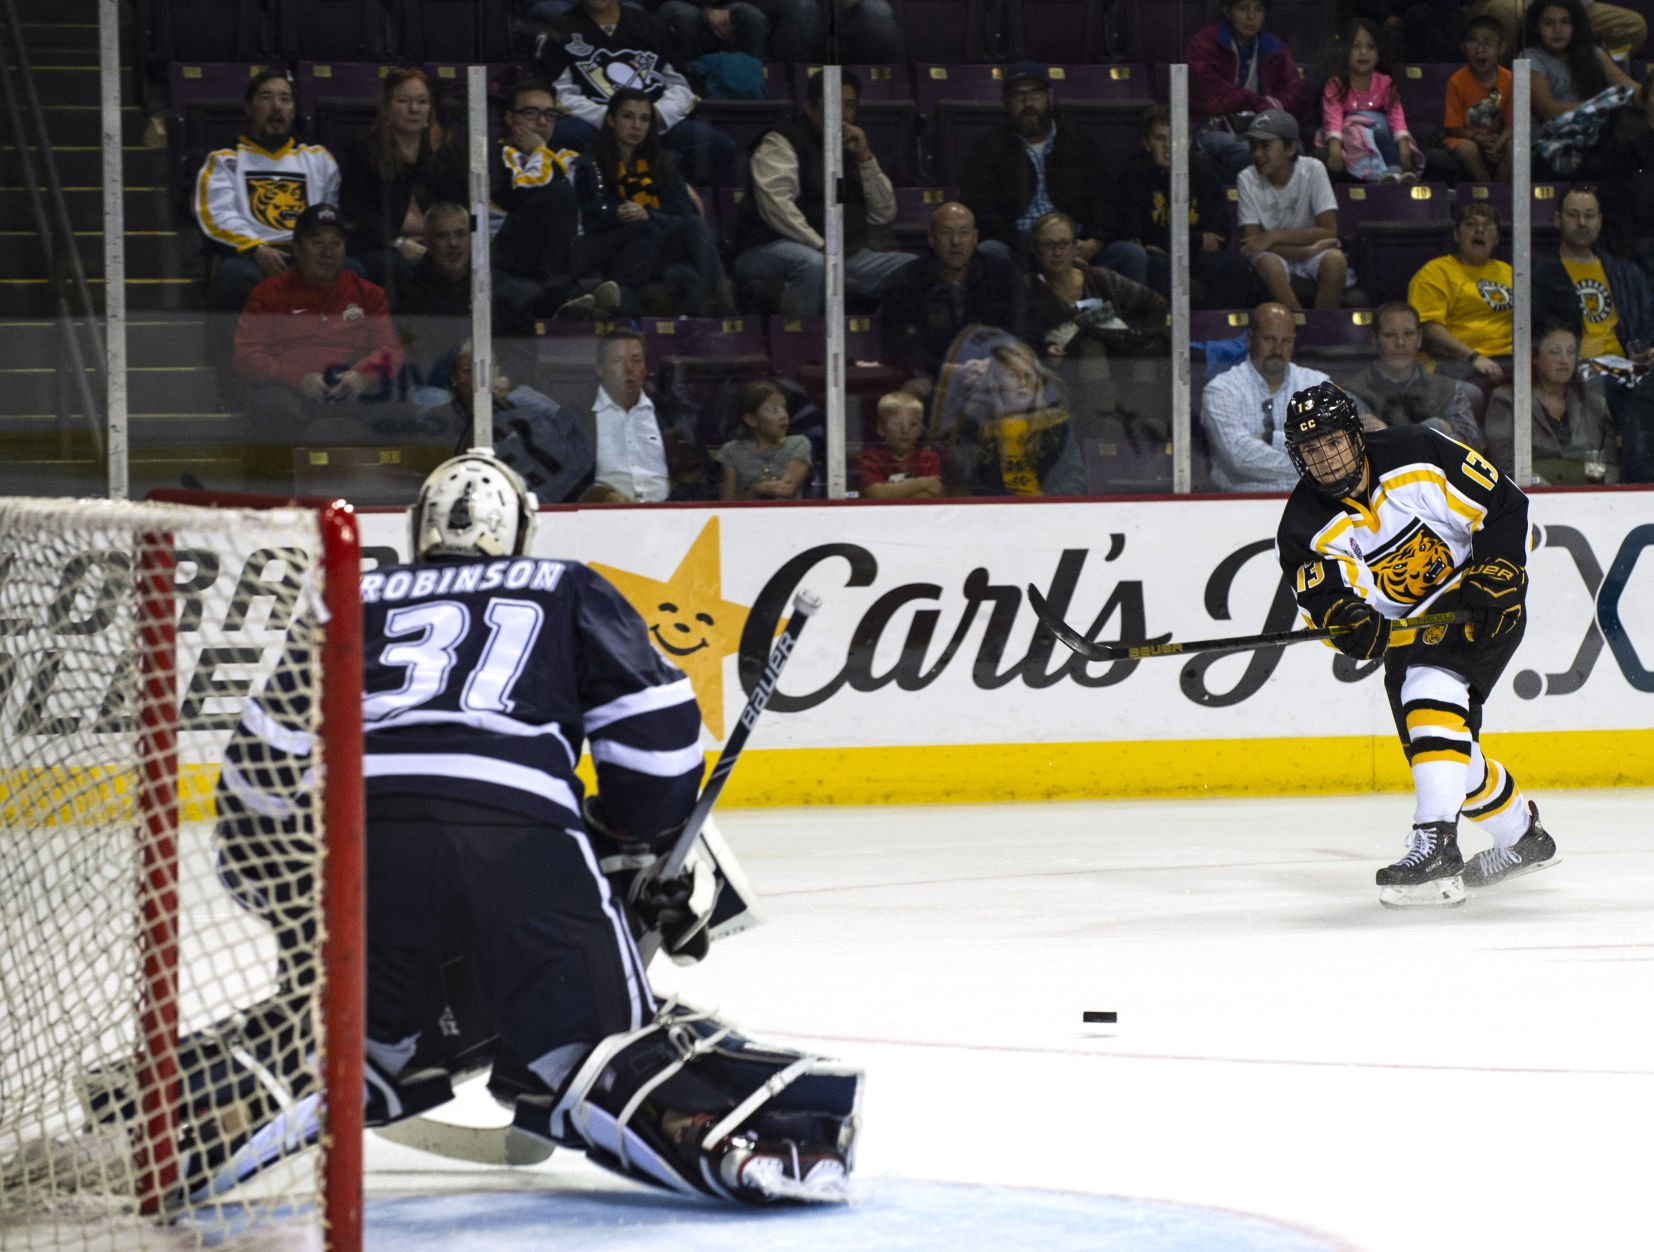 NCHC: Colorado College's Nick Halloran To Miss Rest Of Season With Lower-body Injury